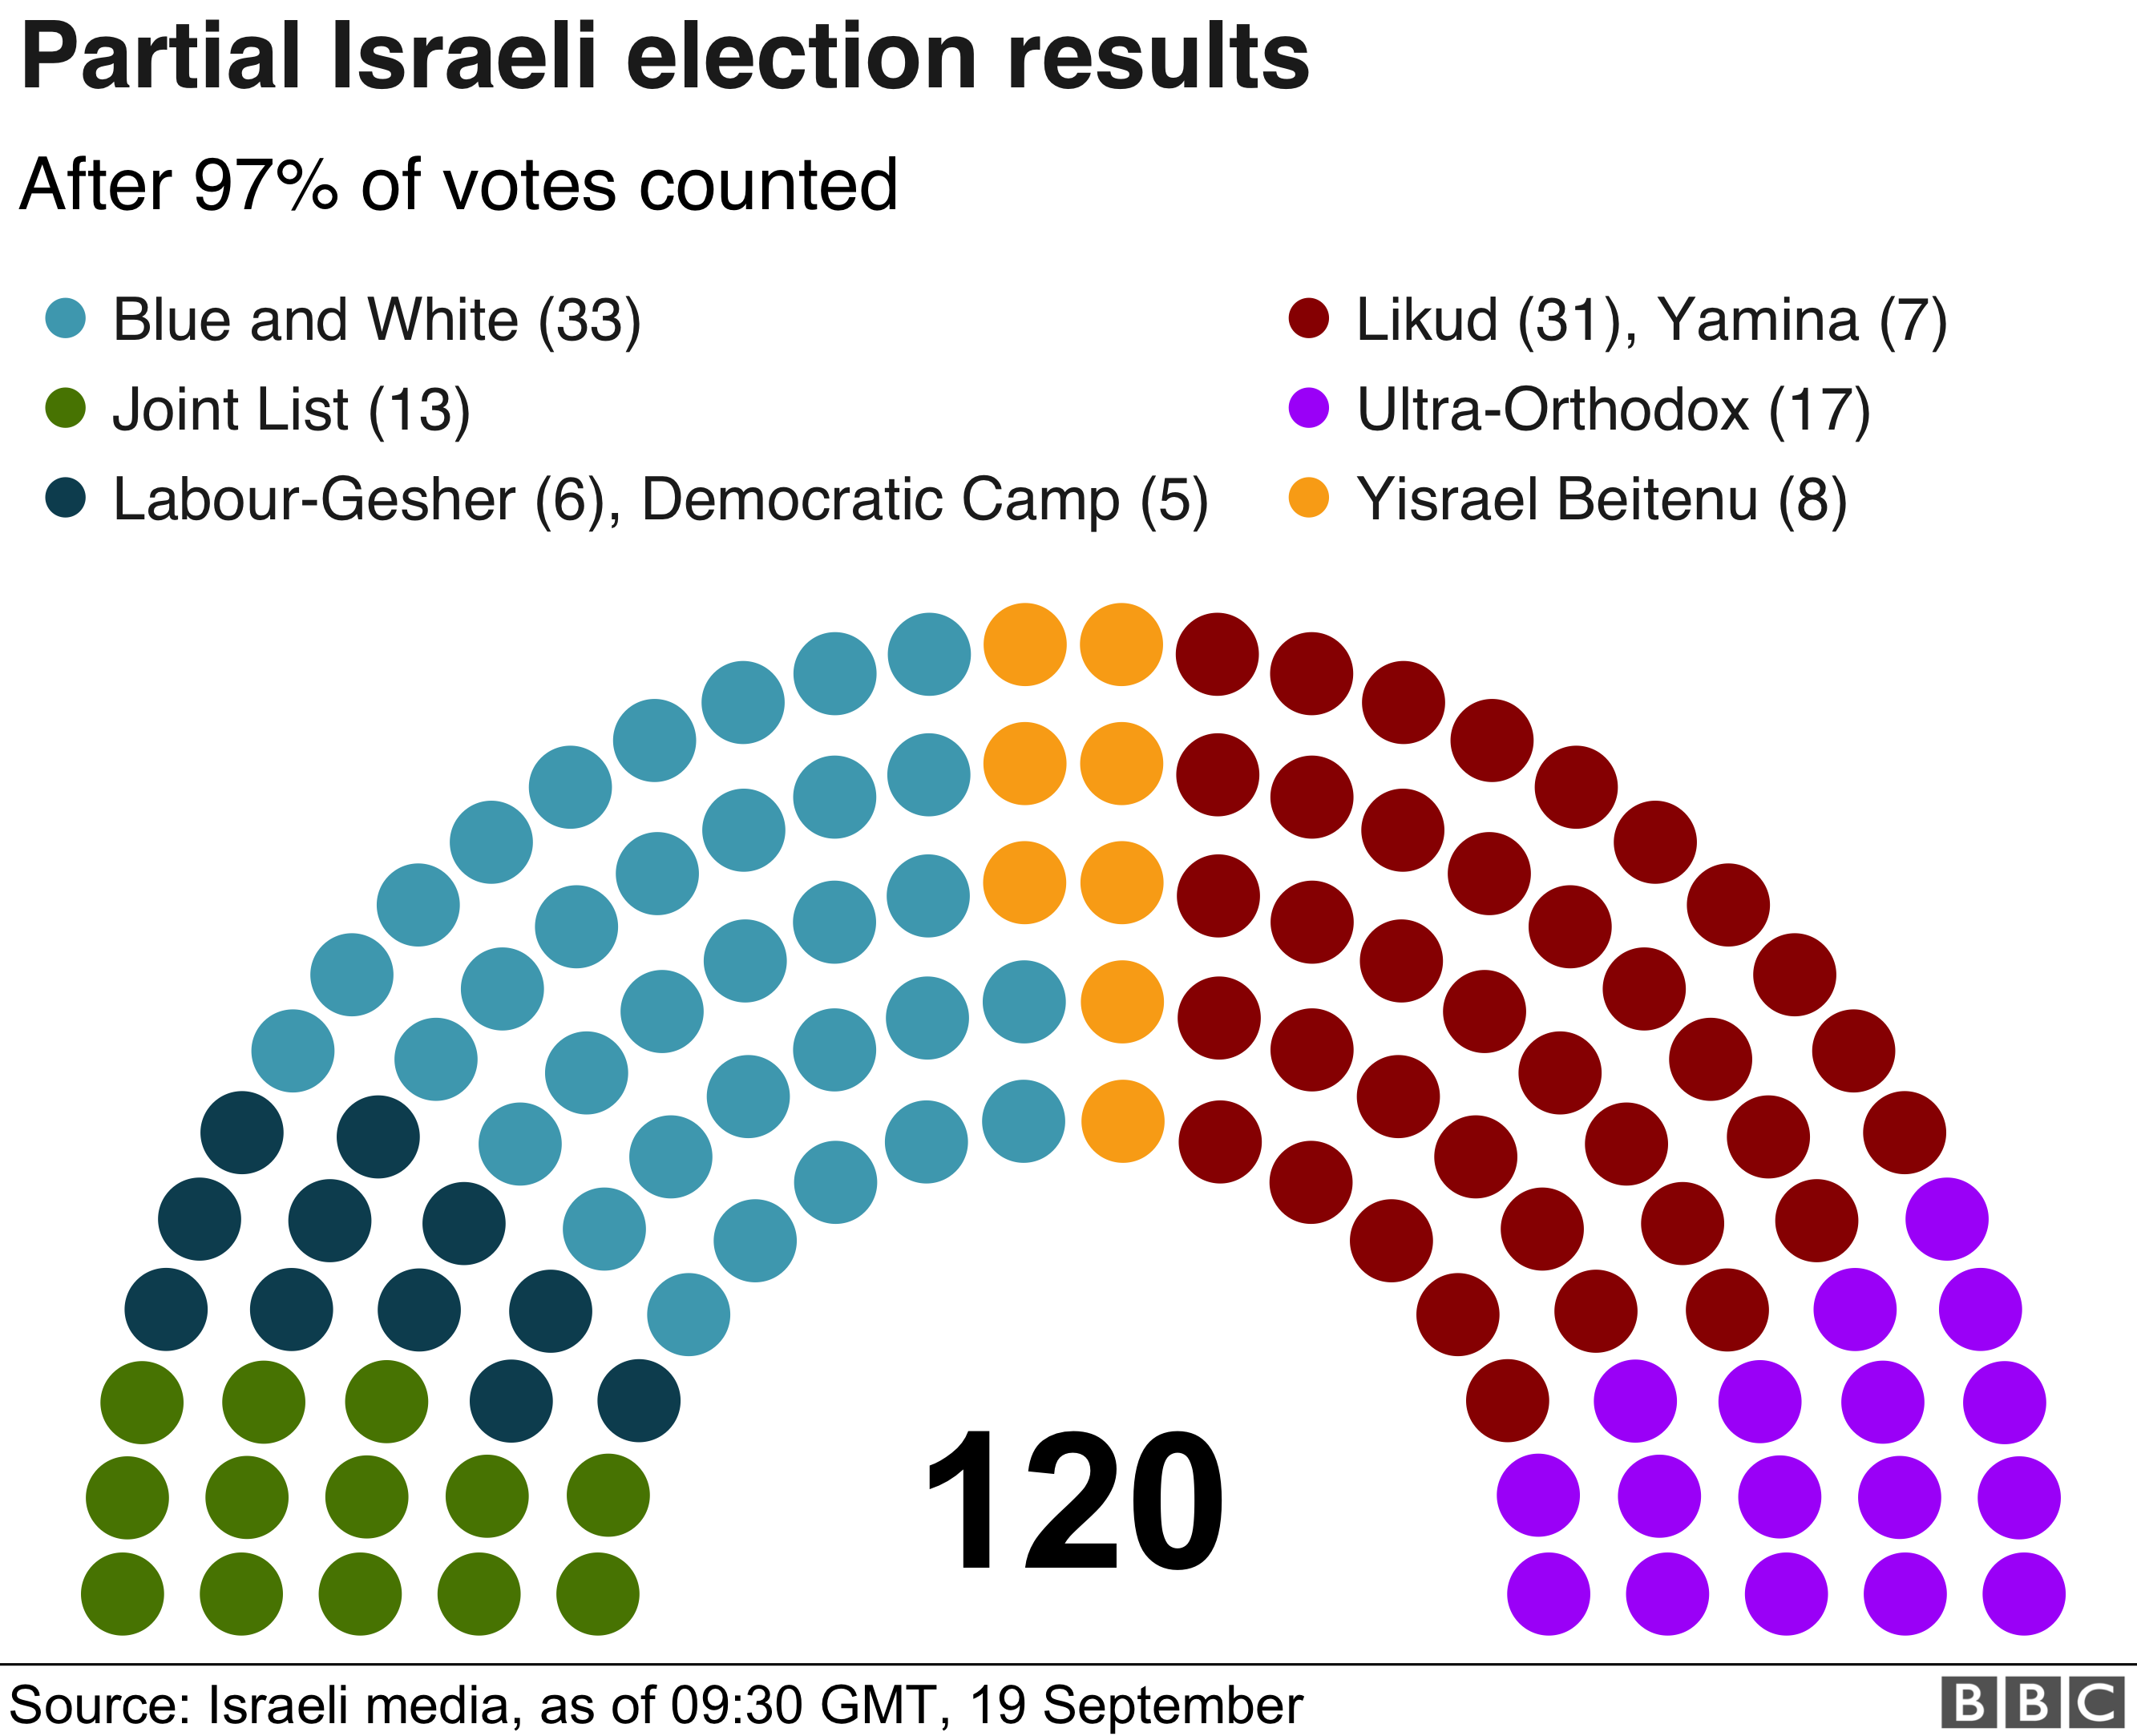 Partial Israeli election results